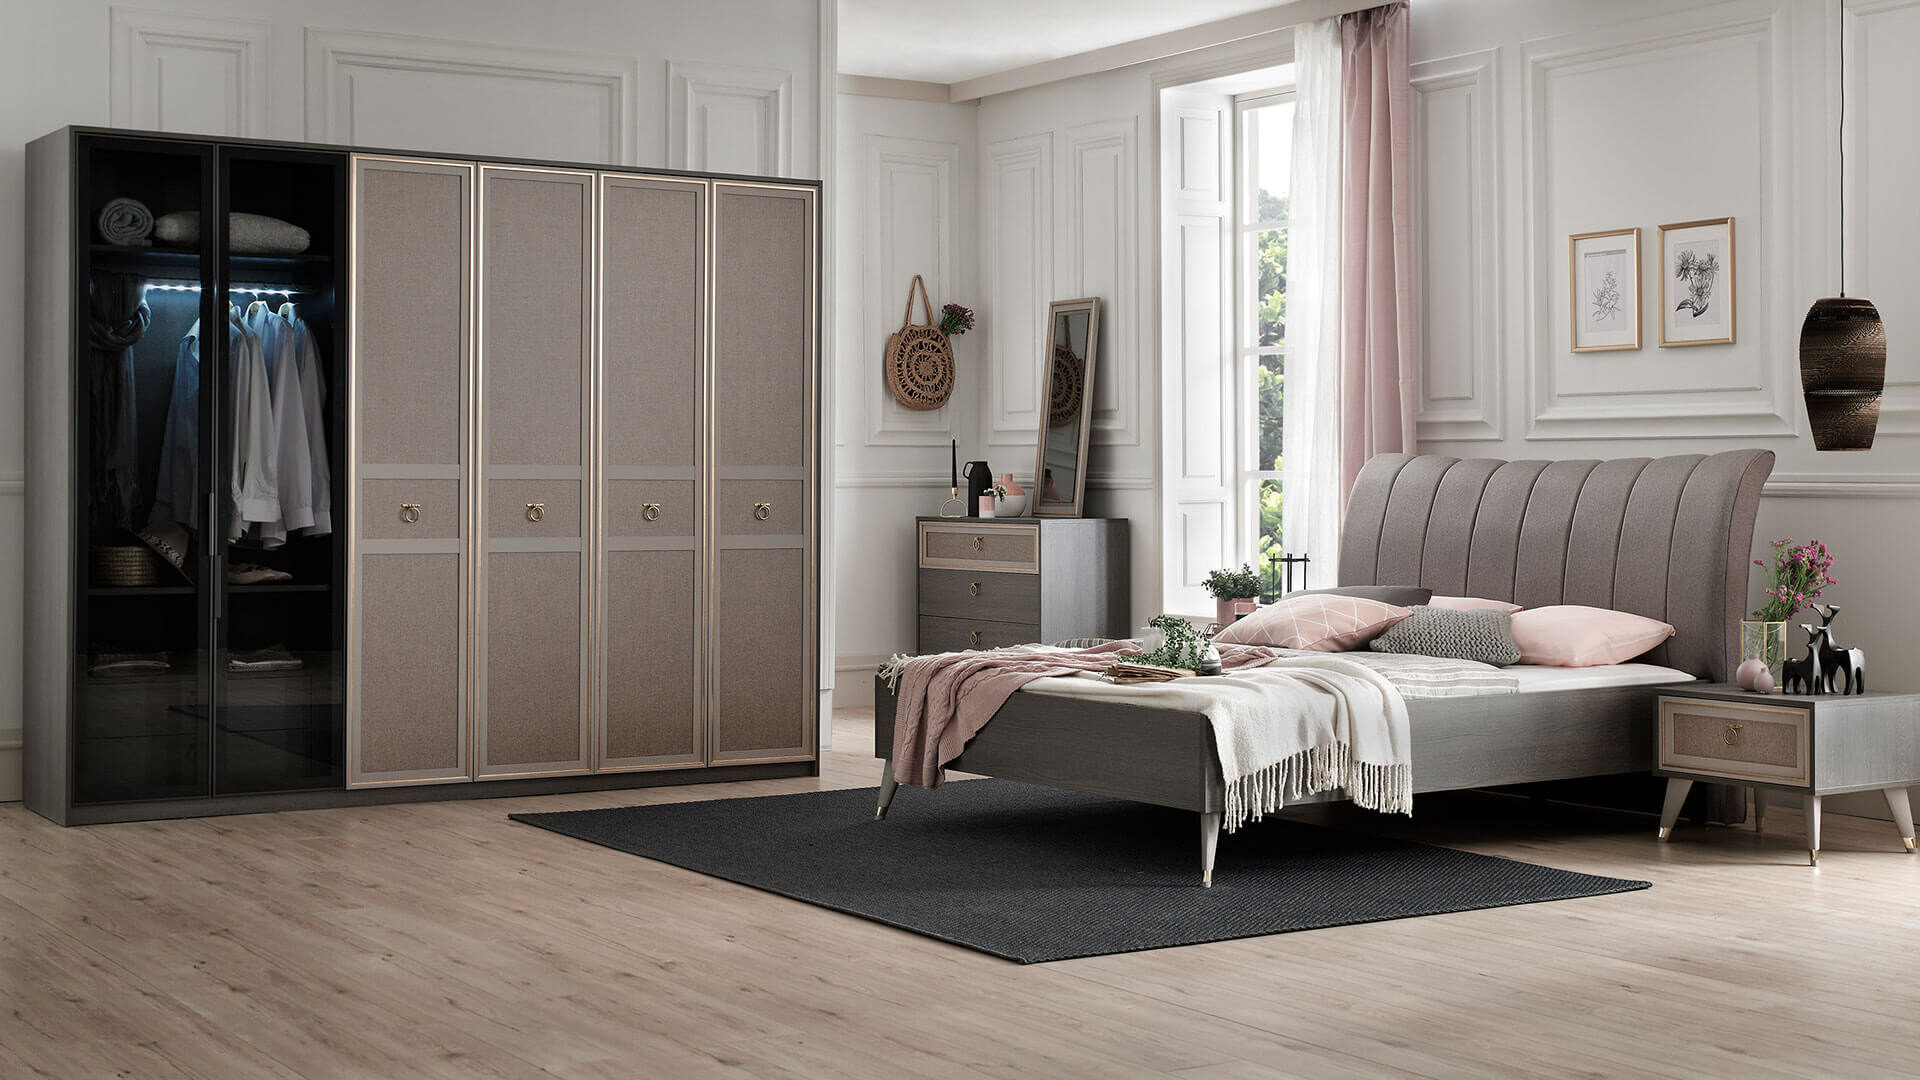 Hector Double Bedstead With Storage